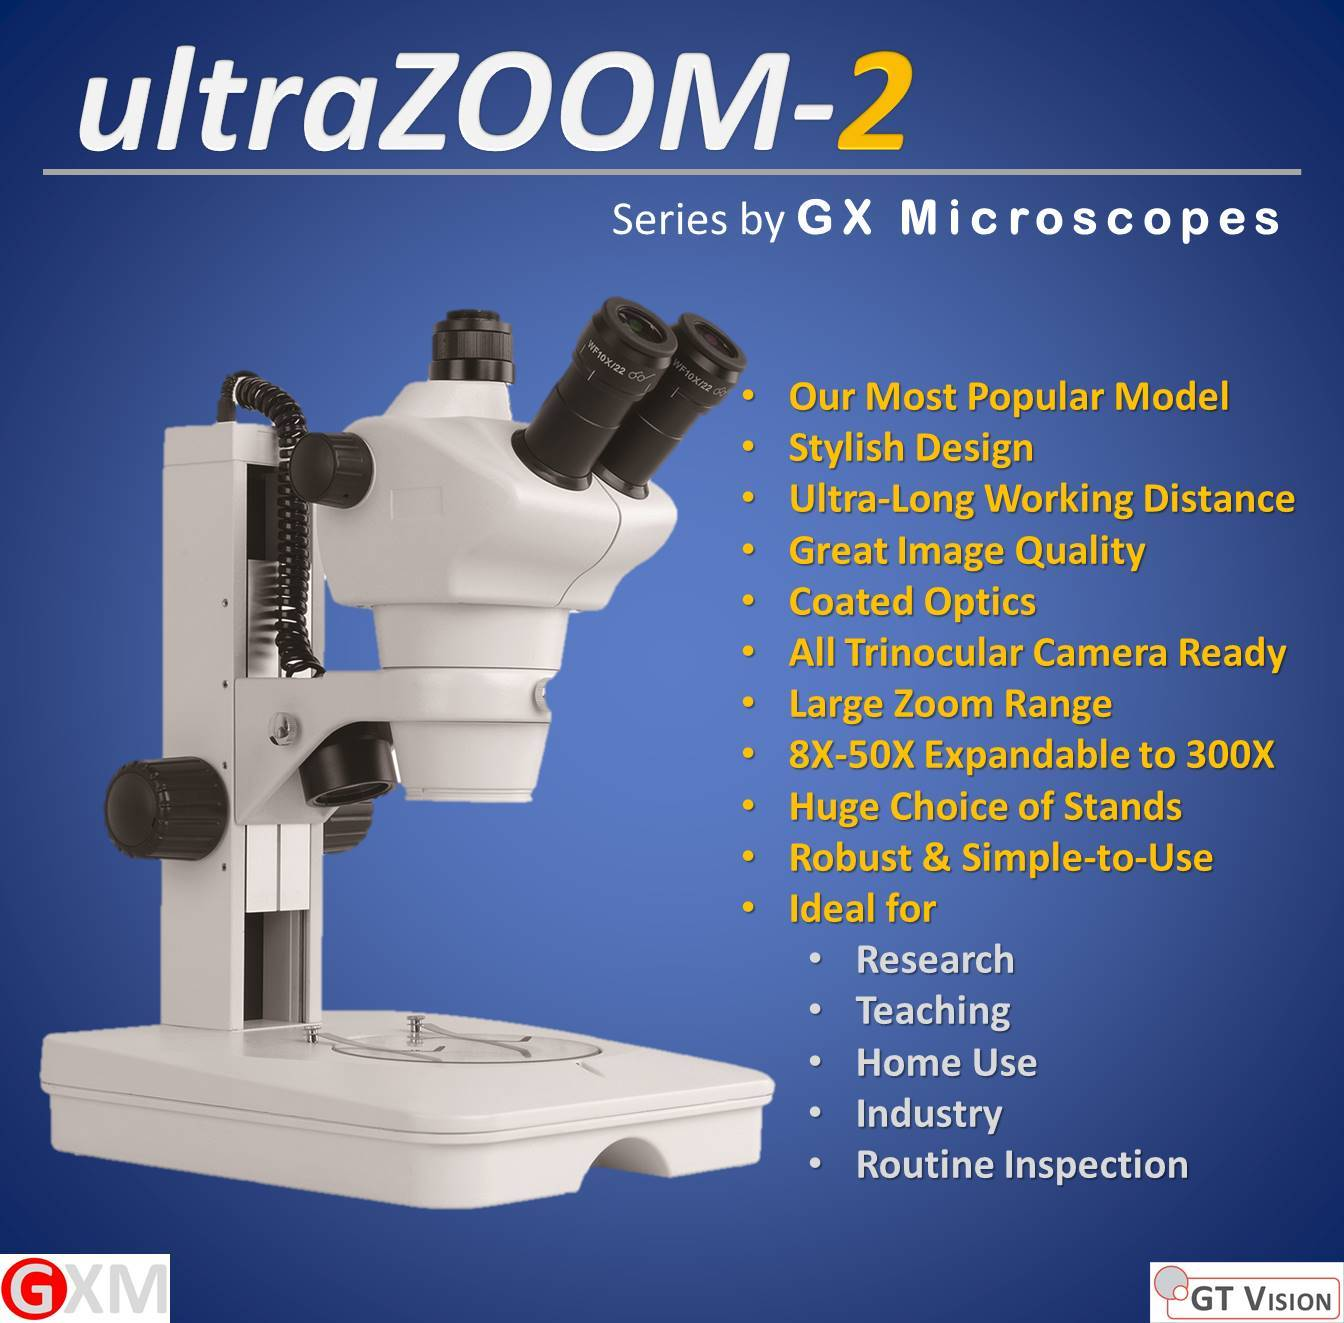 ultraZOOM-2 Stereo Zoom Microscope by GT Vision